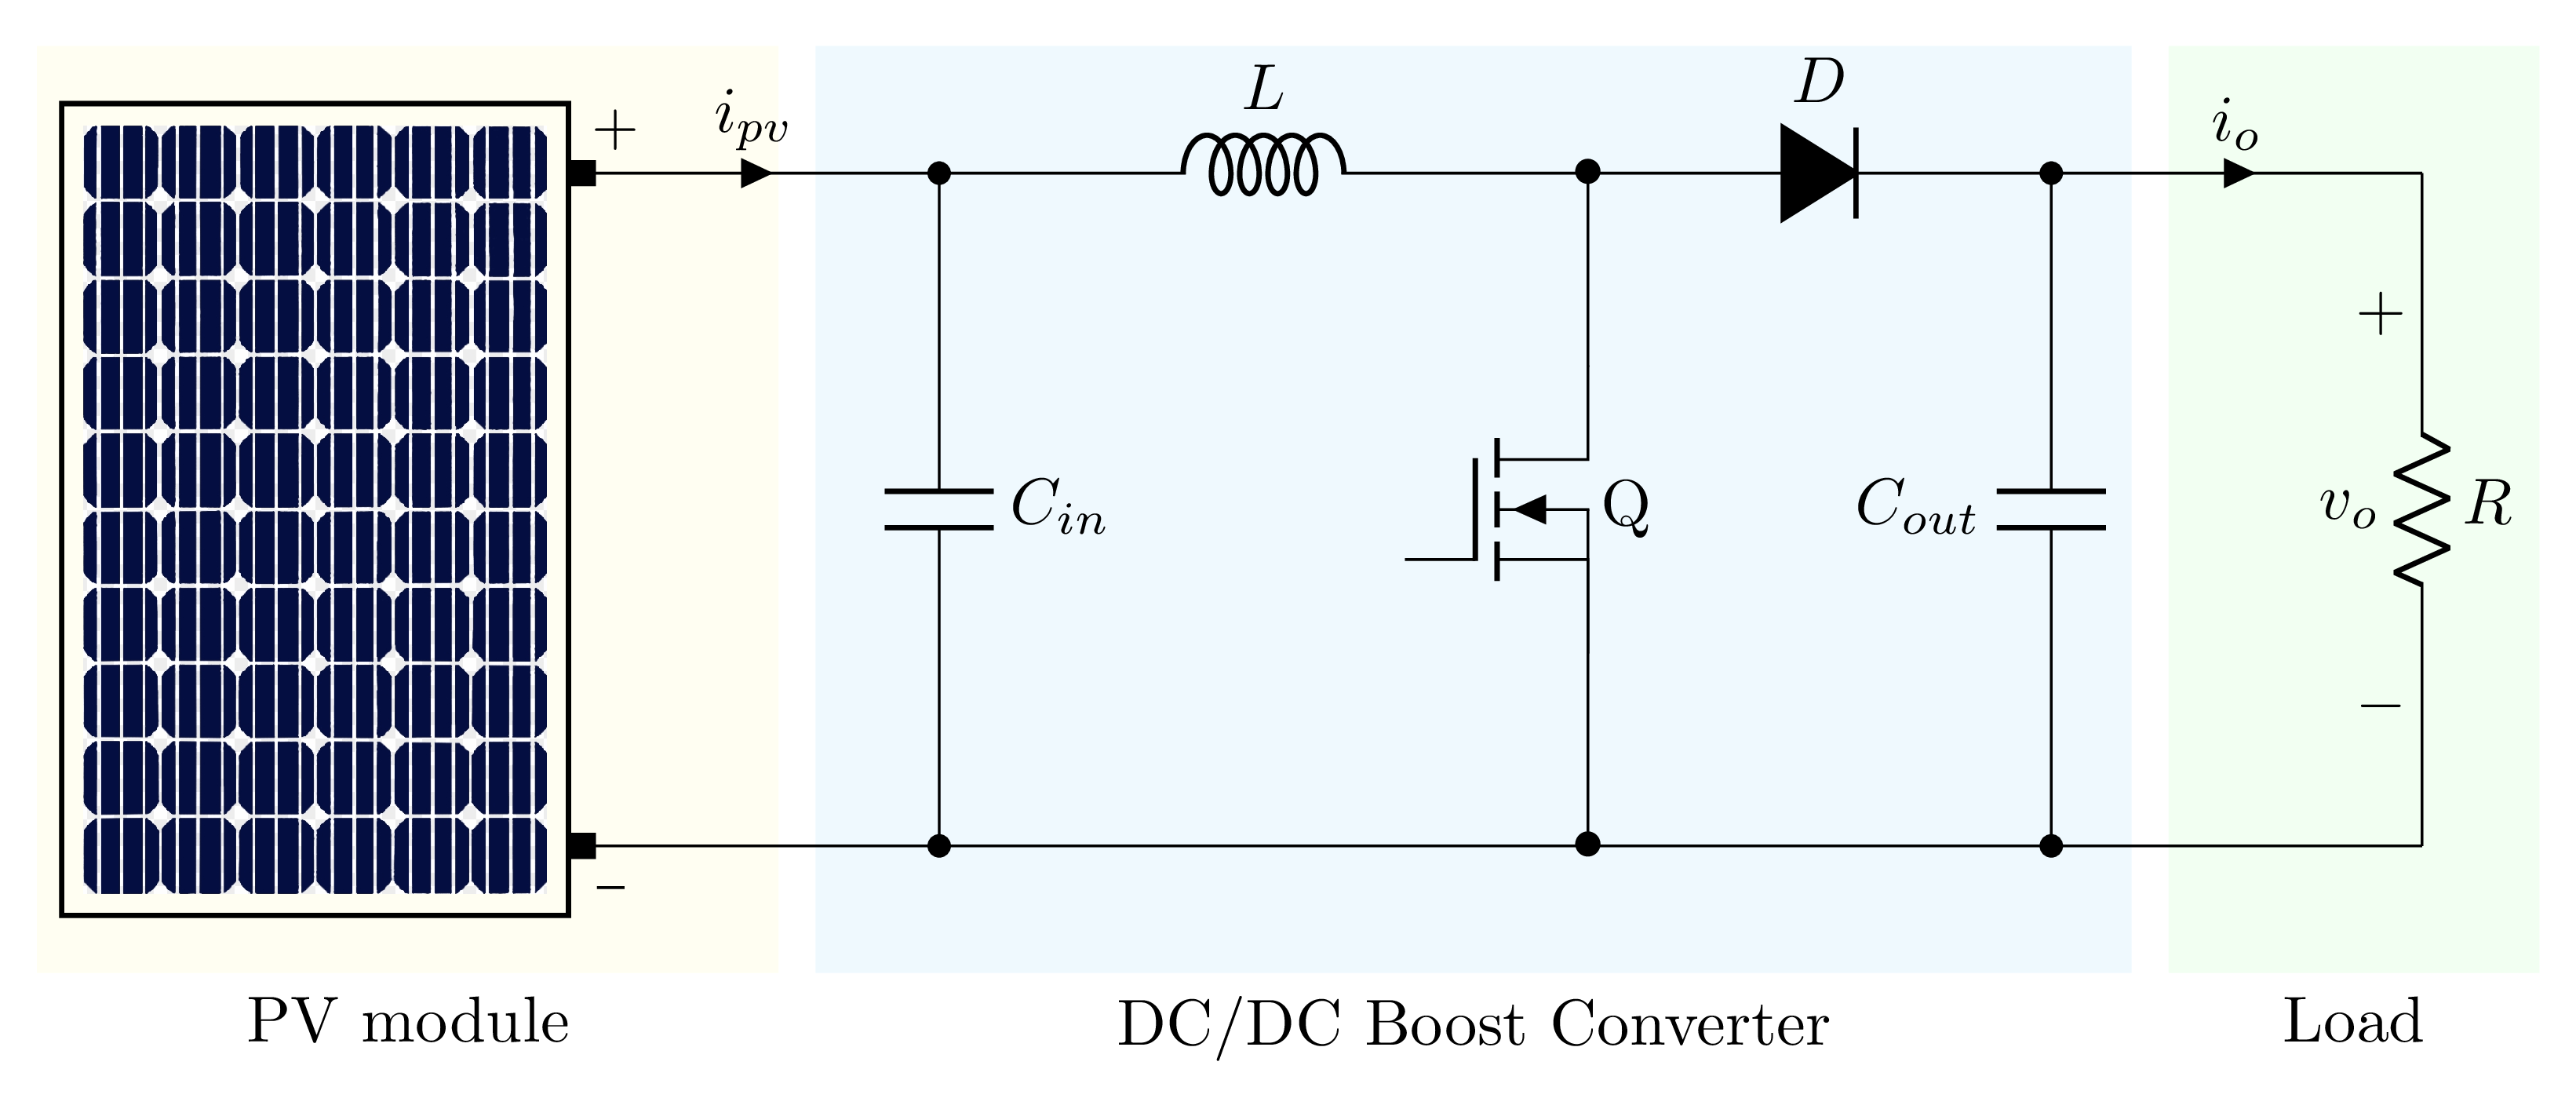 PV panel connected to a dc dc boost converter in LaTeX using CircuiTikZ and TikZ